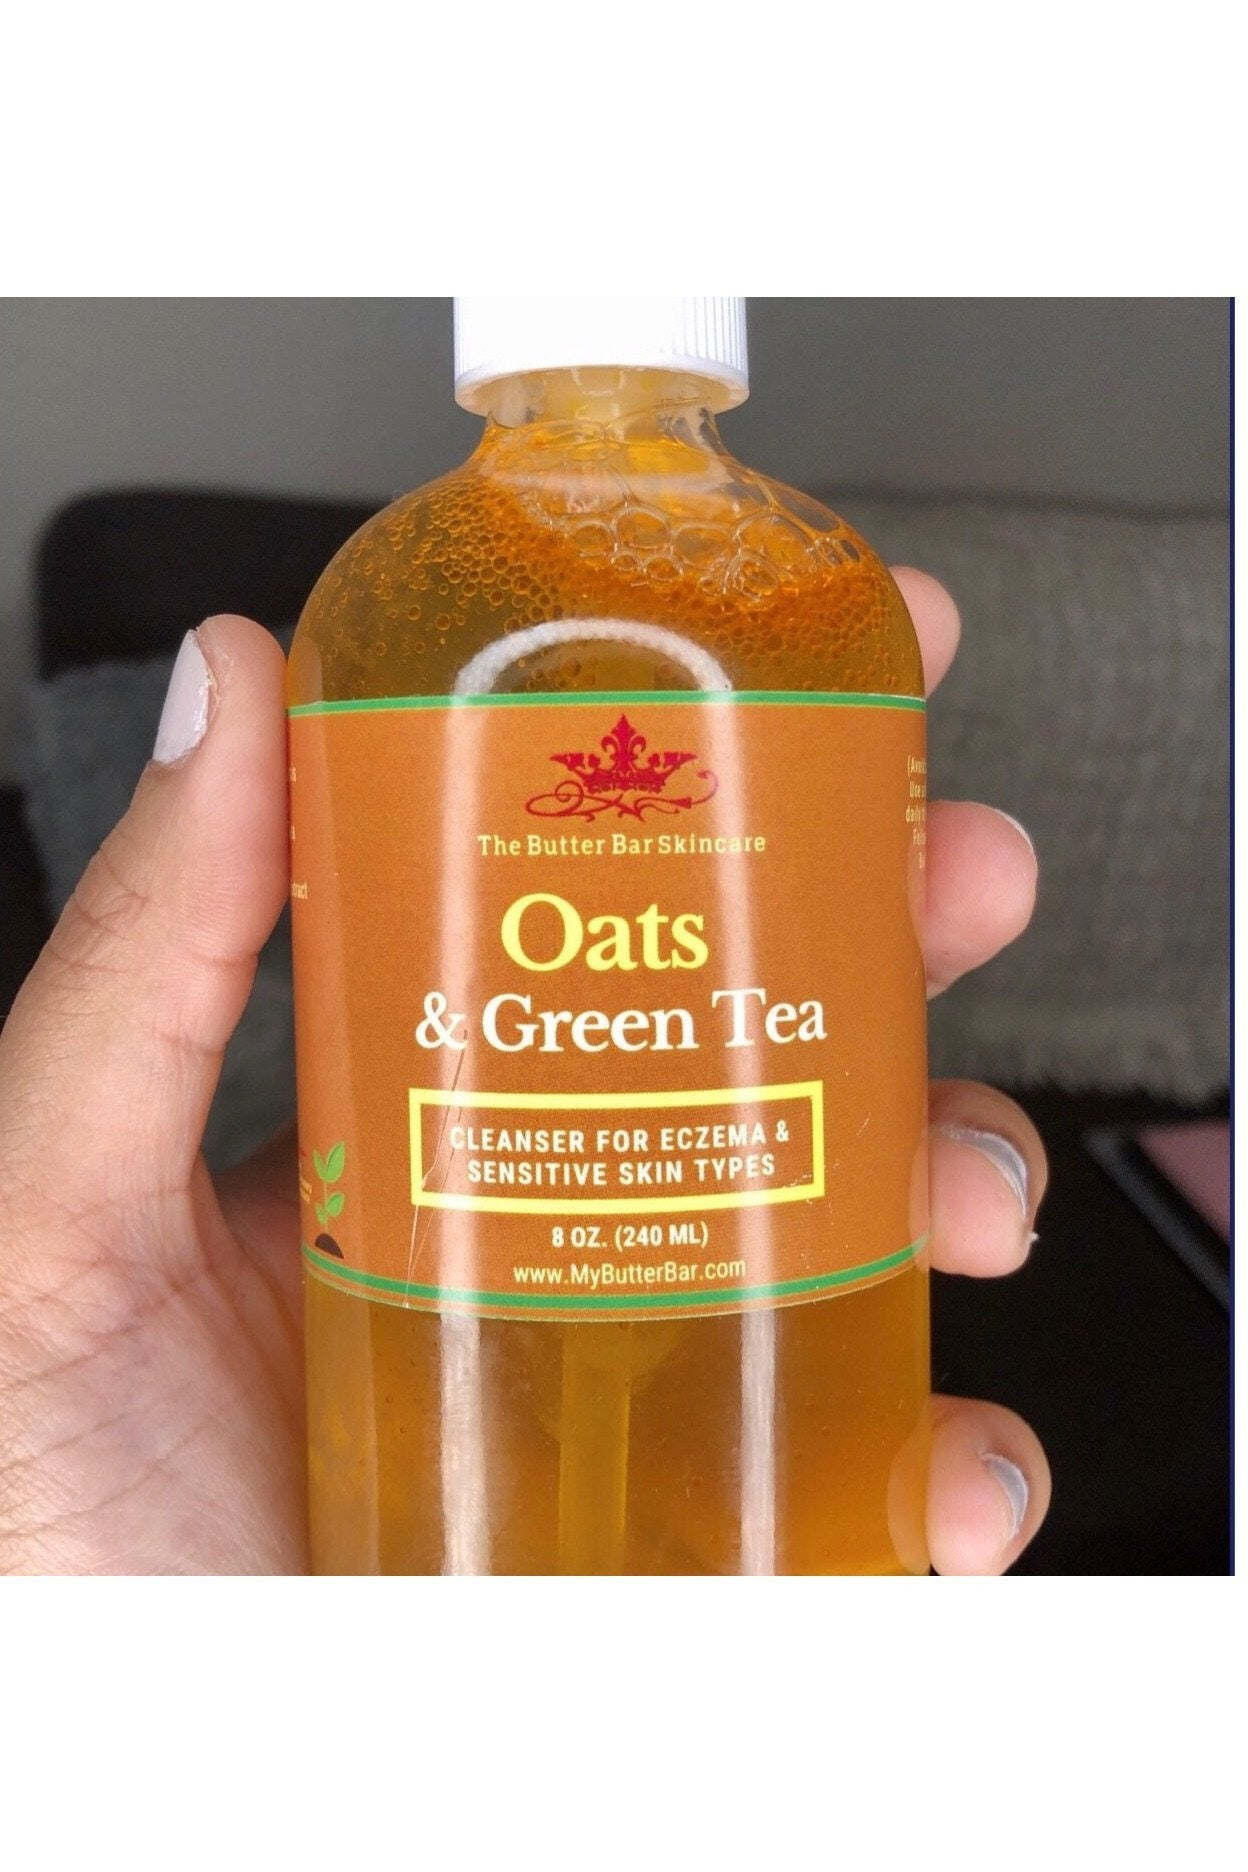 Oats & Green Tea Cleanser (Eczema & Sensitive Skin Types)